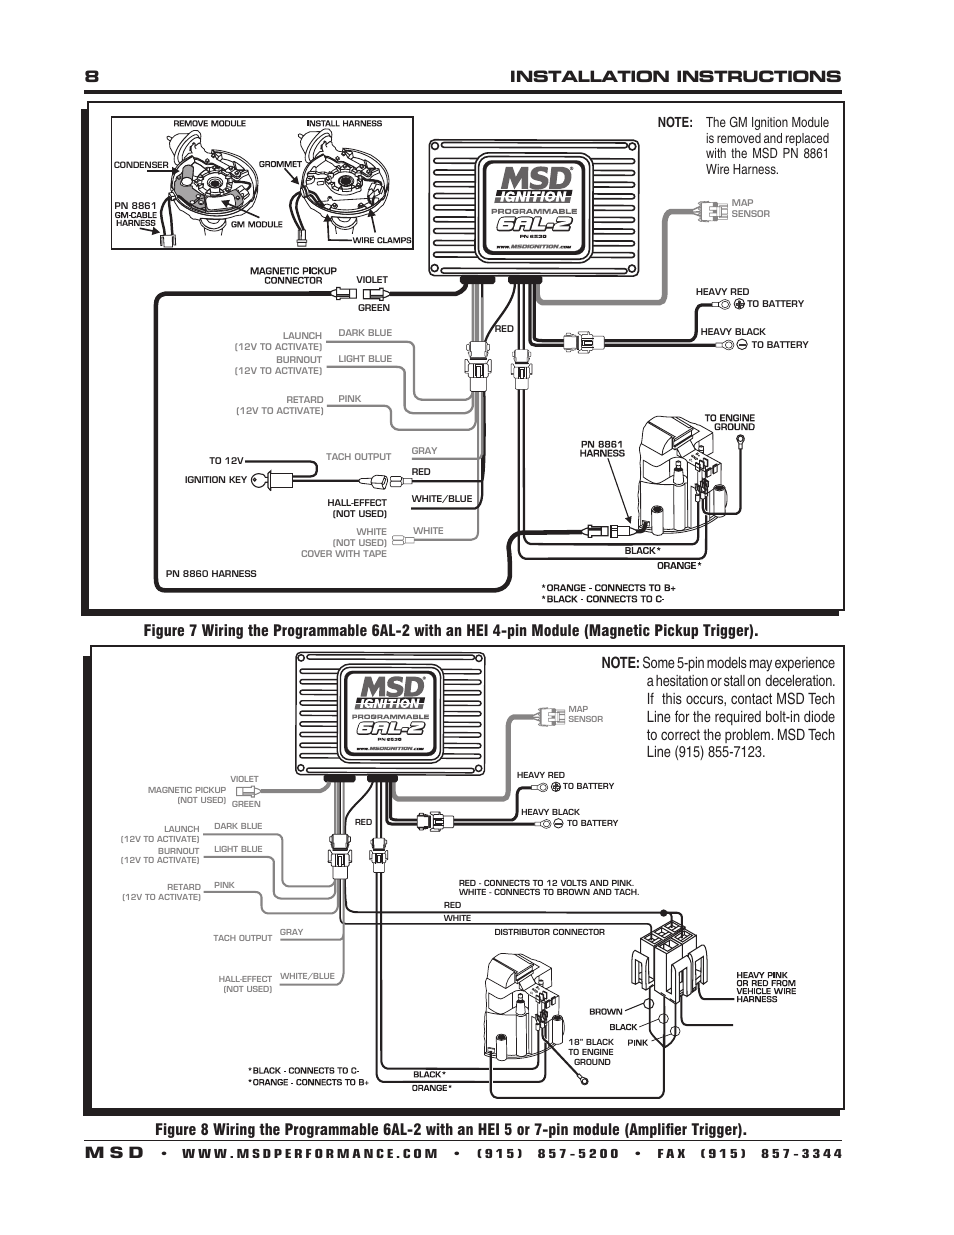 msd 6530 digital programmable 6al 2 installation page8?resized665%2C861 msd 6aln wiring diagram efcaviation com MSD 6A Wiring-Diagram at soozxer.org